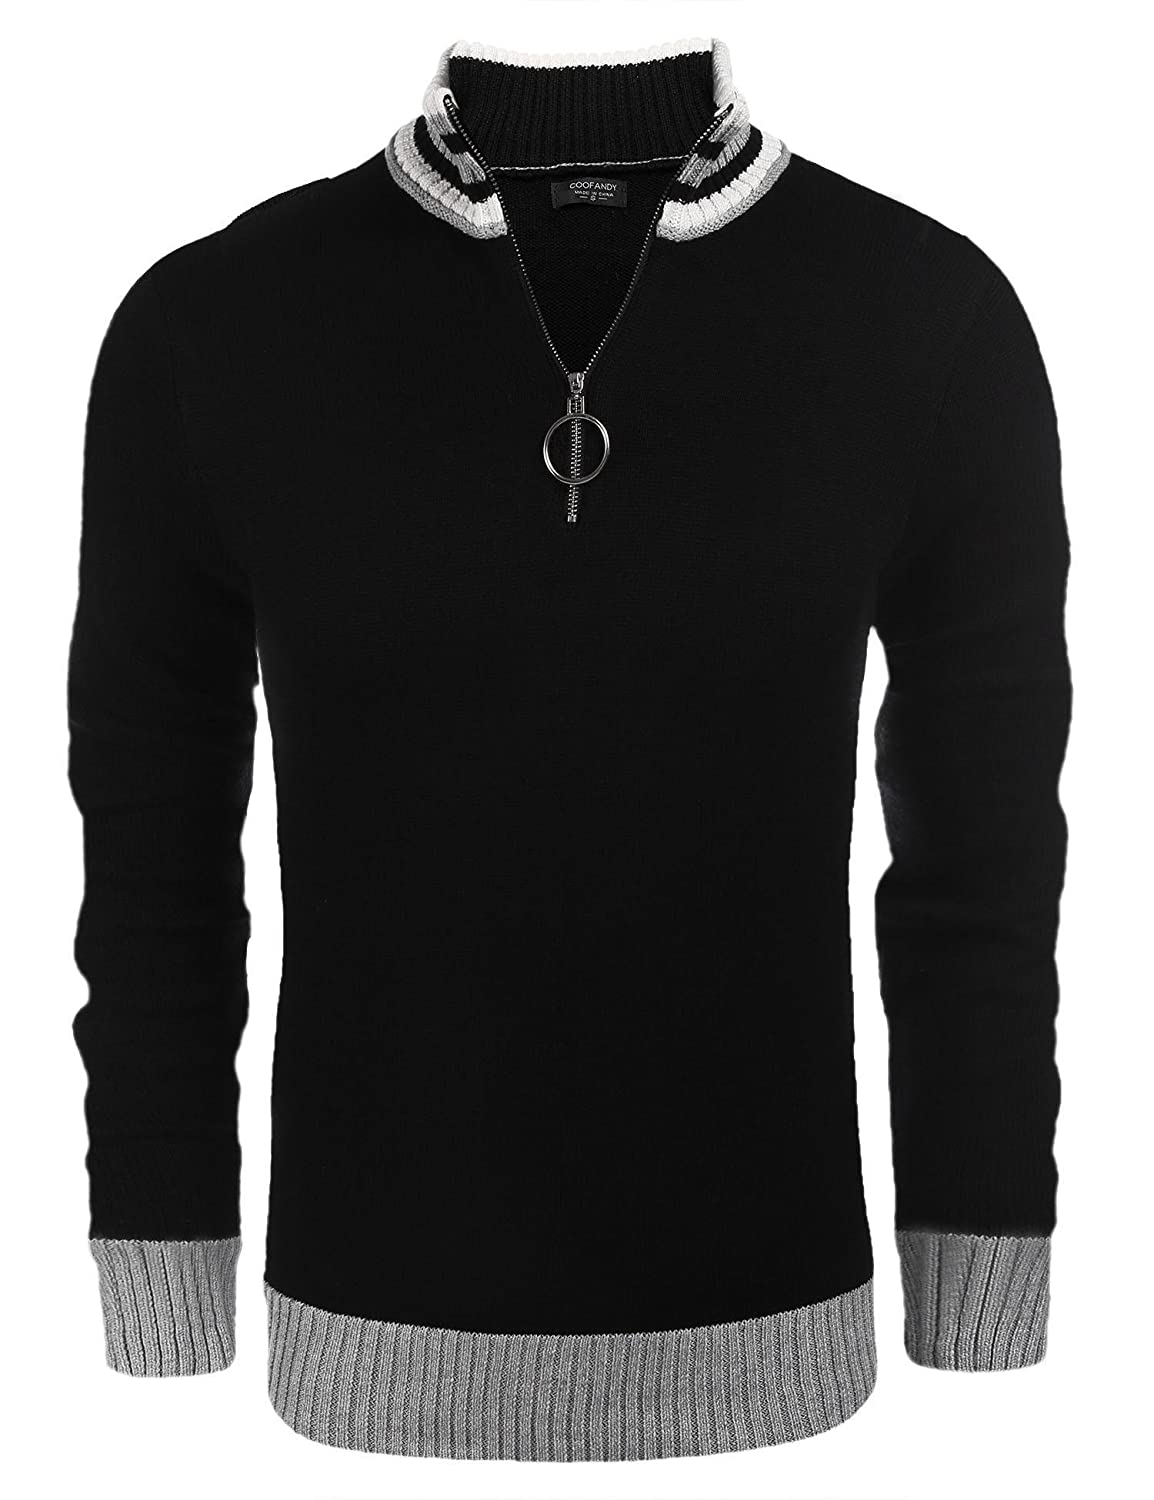 0e1c8b7af COOFANDY Men's Casual Quarter Zip Polo Sweater Slim Fit Long Sleeve  Pullover Sweaters Black: Amazon.ca: Clothing & Accessories